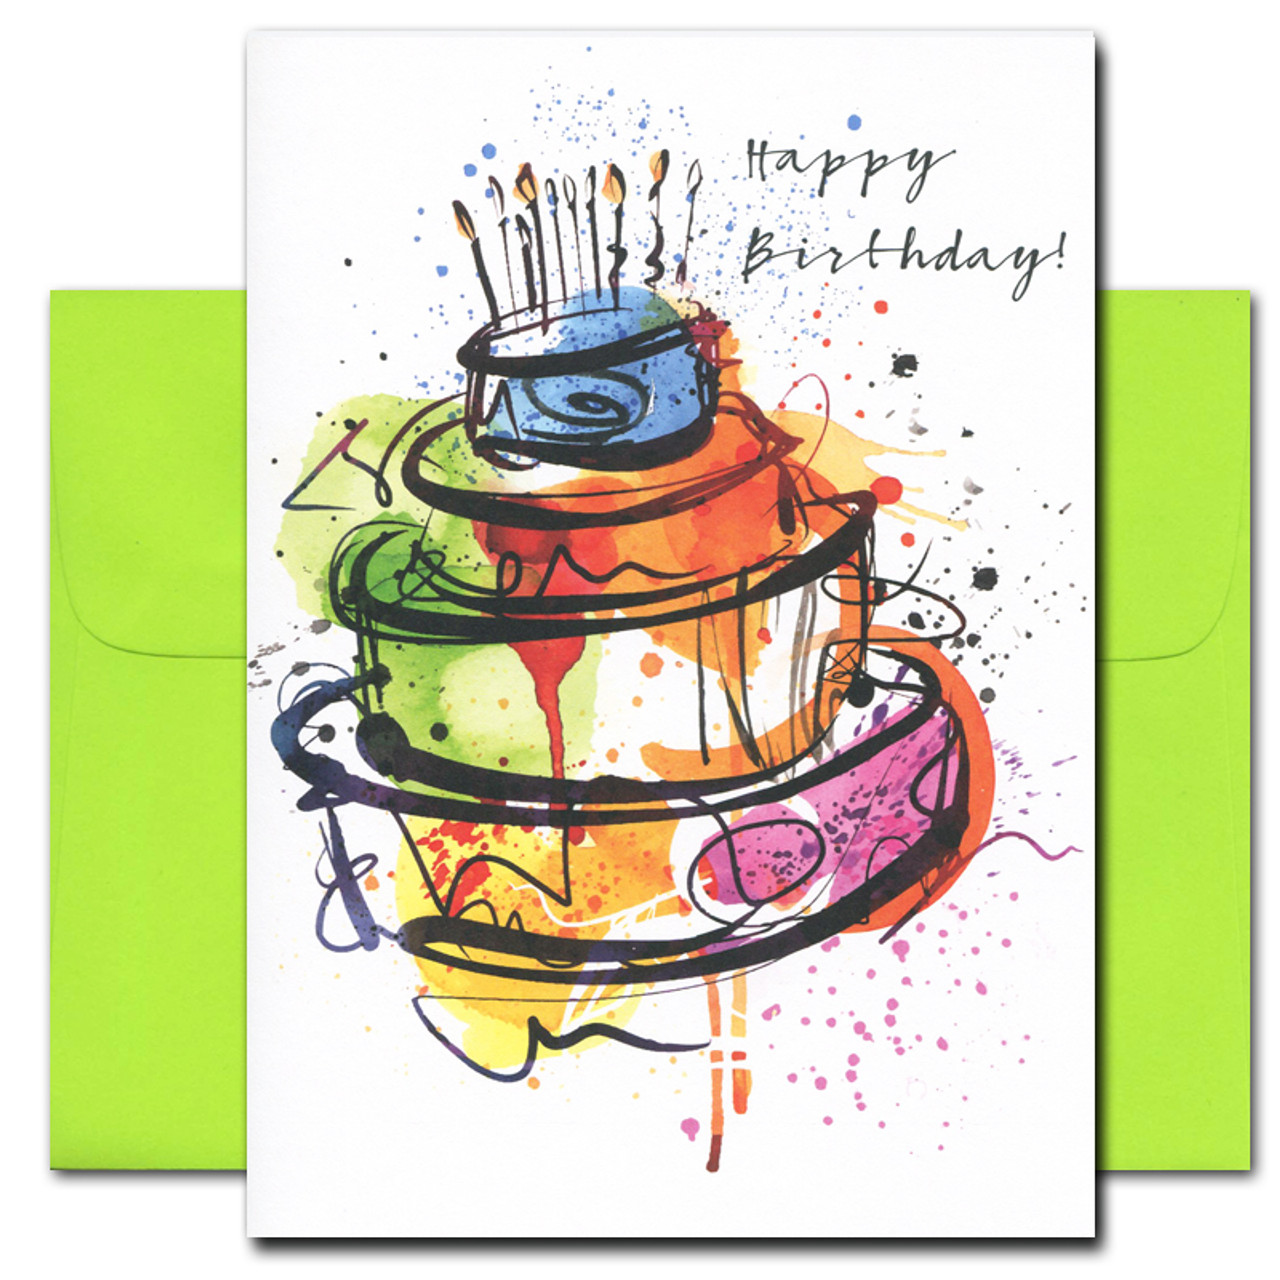 Birthday Card – Big Cake cover showing an abstract drawing of a 3 tiered birthday cake in in bright colors with the words Happy Birthday in informal script